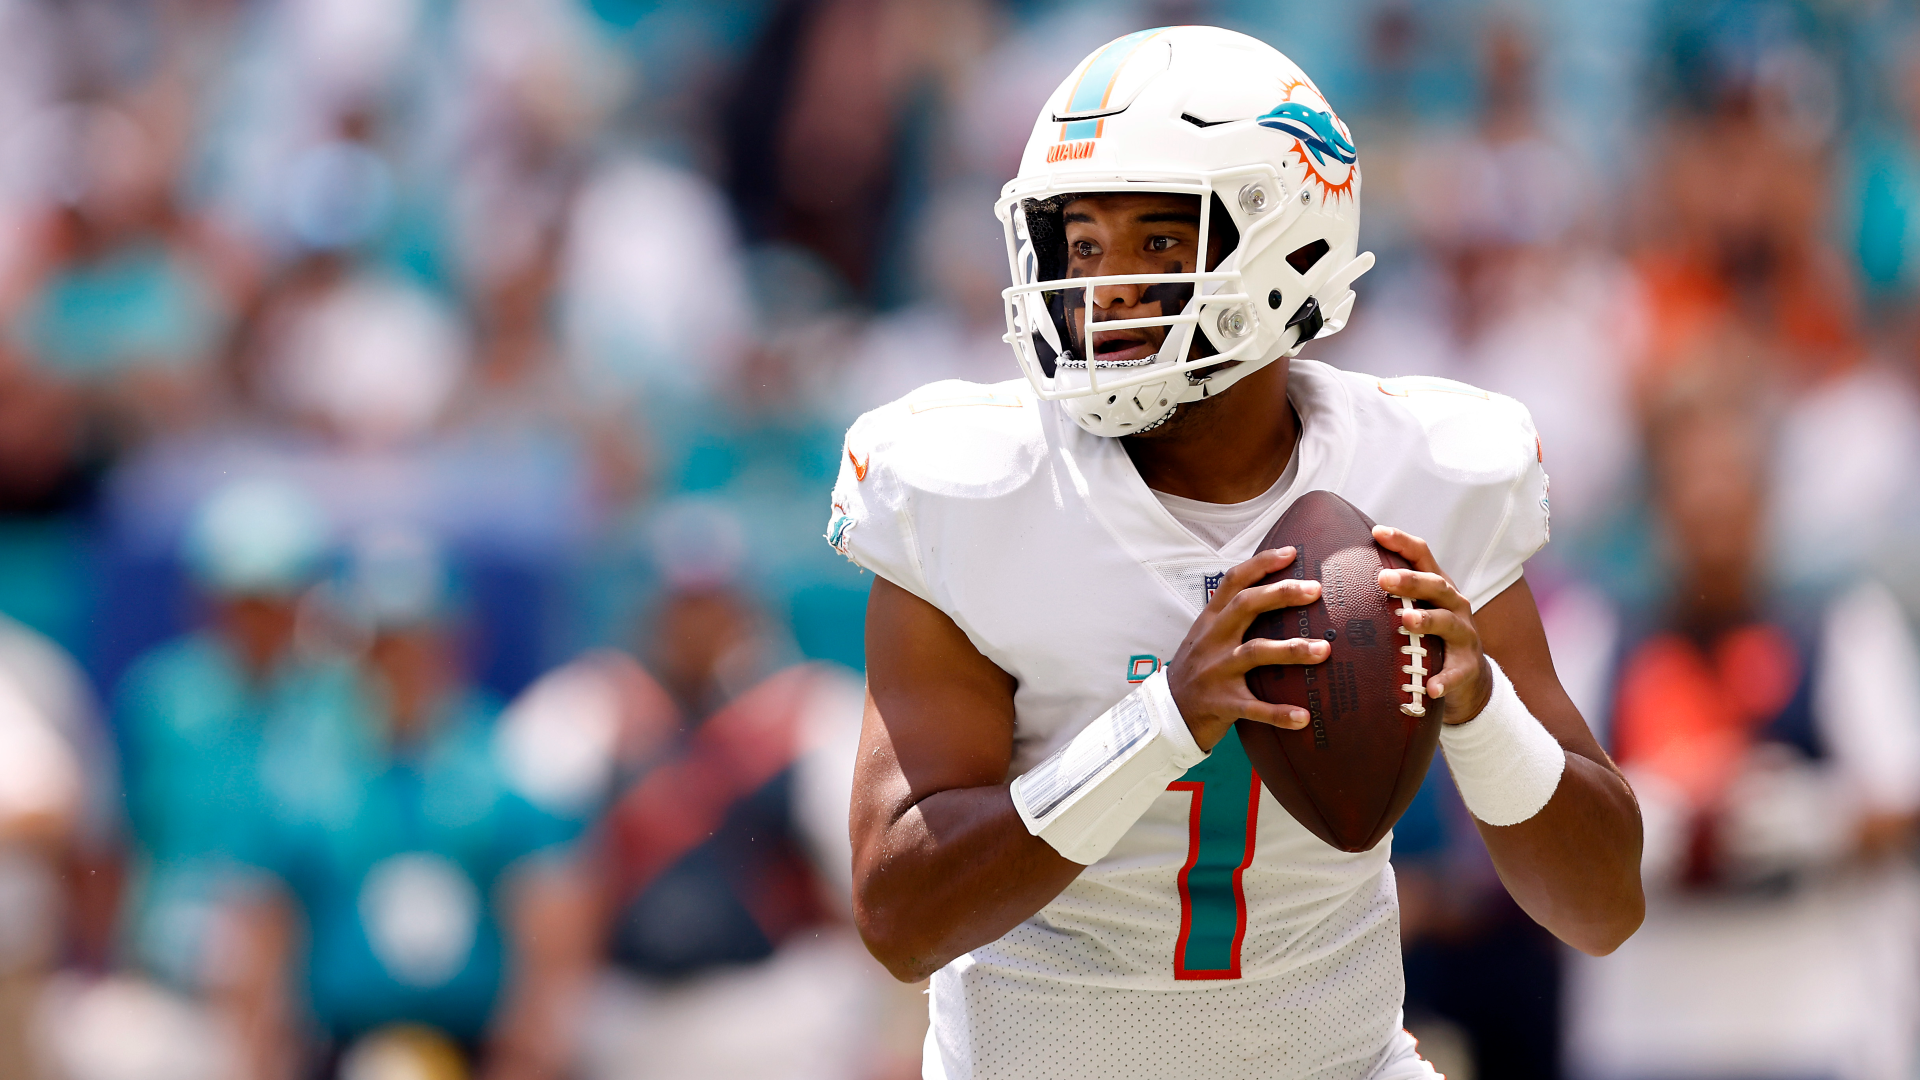 Is Tua Tagovailoa playing Sunday? Brian Flores reveals status of Dolphins' QB before London game